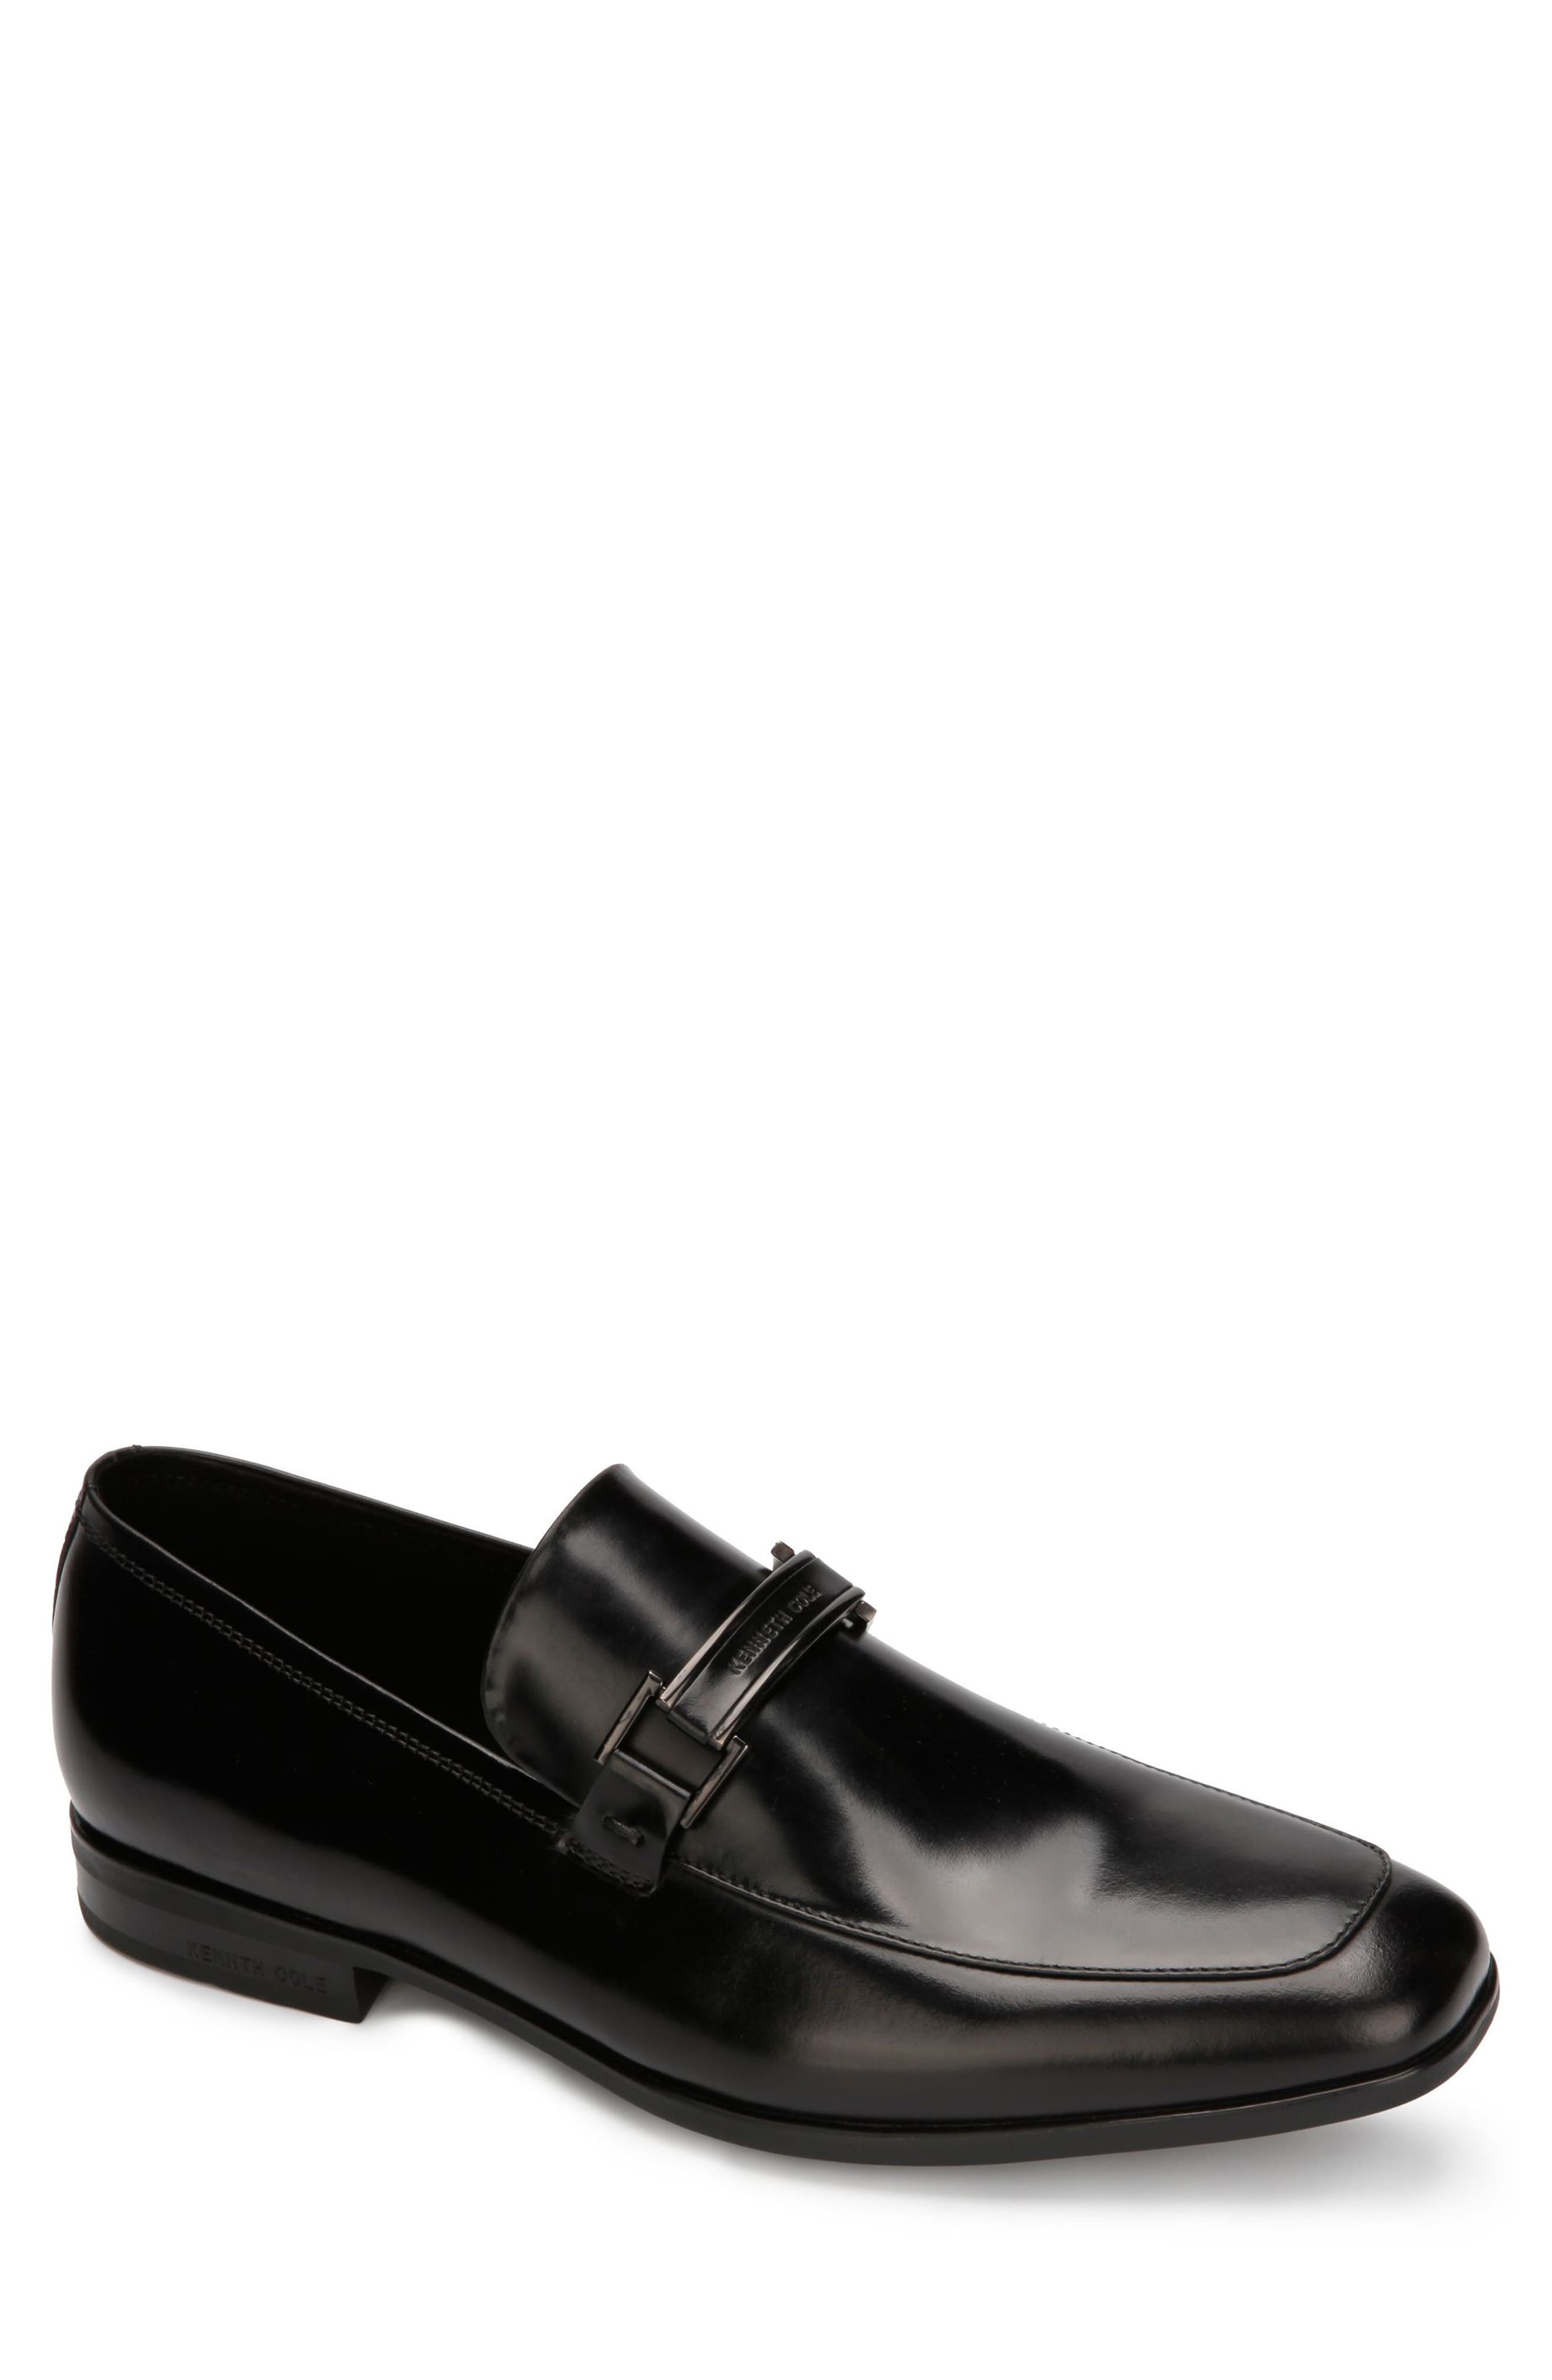 KENNETH COLE NEW YORK, Aaron Toe Loafer, Main thumbnail 1, color, 001